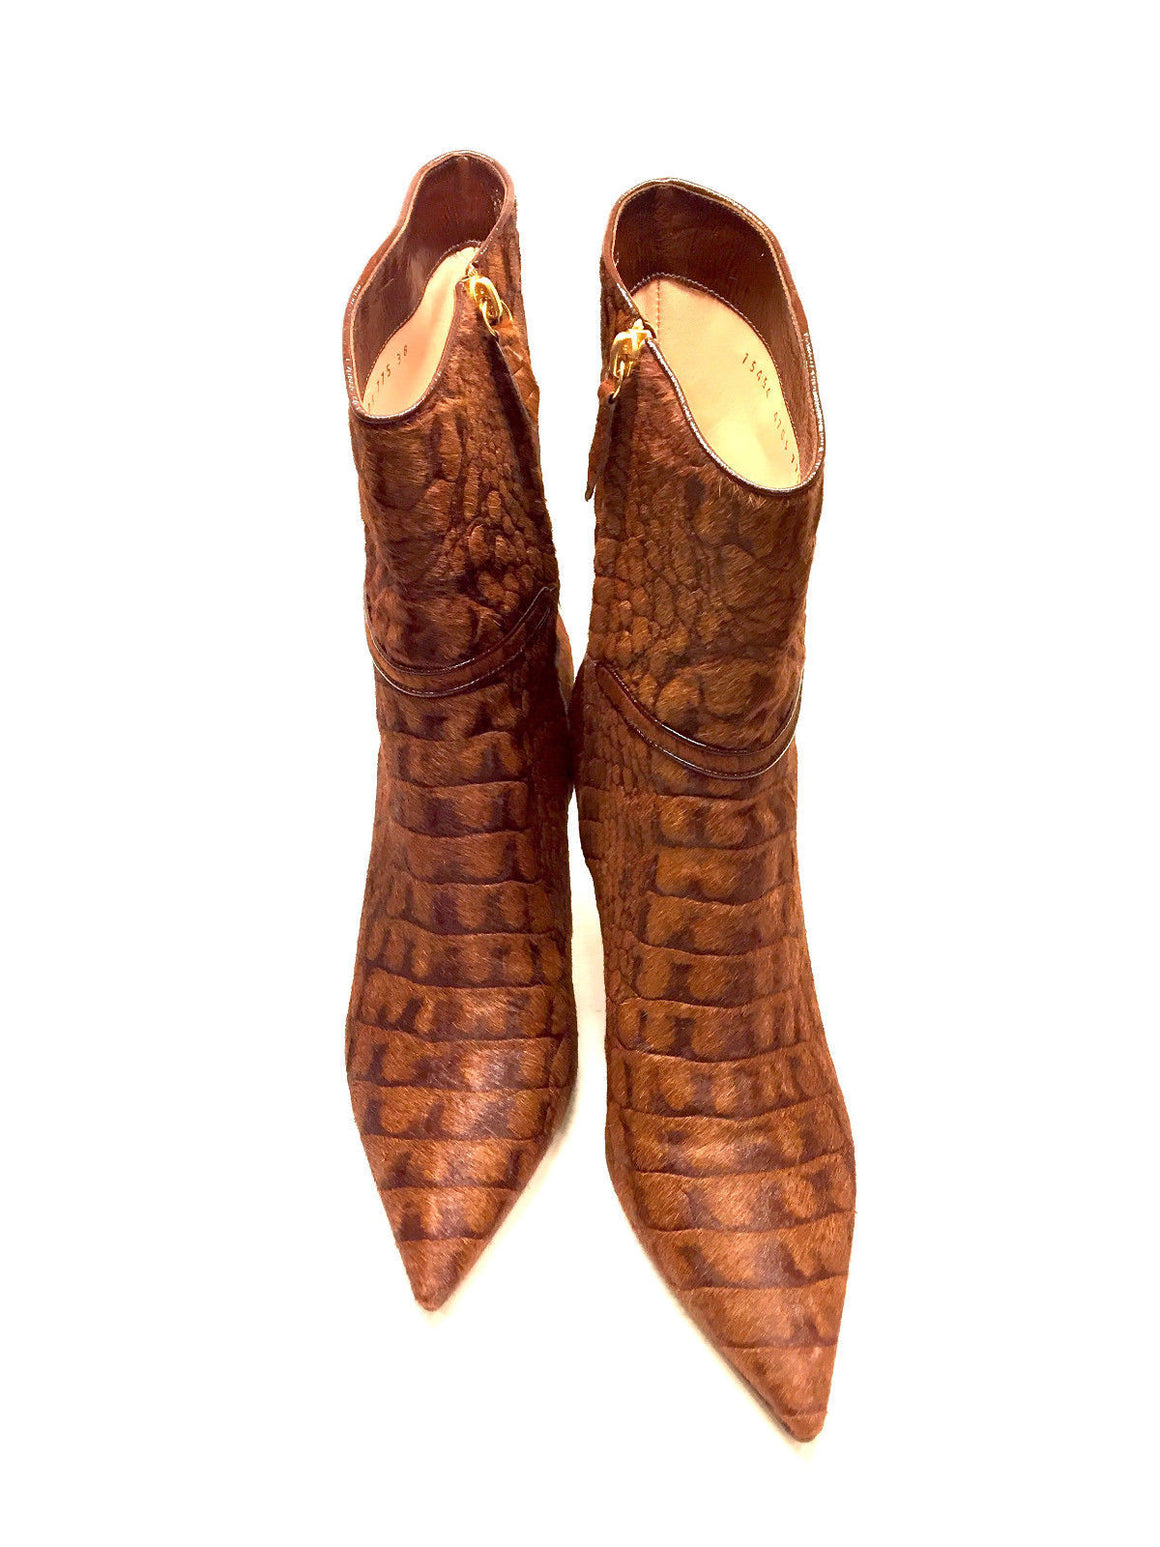 bisbiz.com CASADEI Cognac Reptile-Patterned Calf Hair Slim Heel Low Boots Size: 8B - Bis Luxury Resale